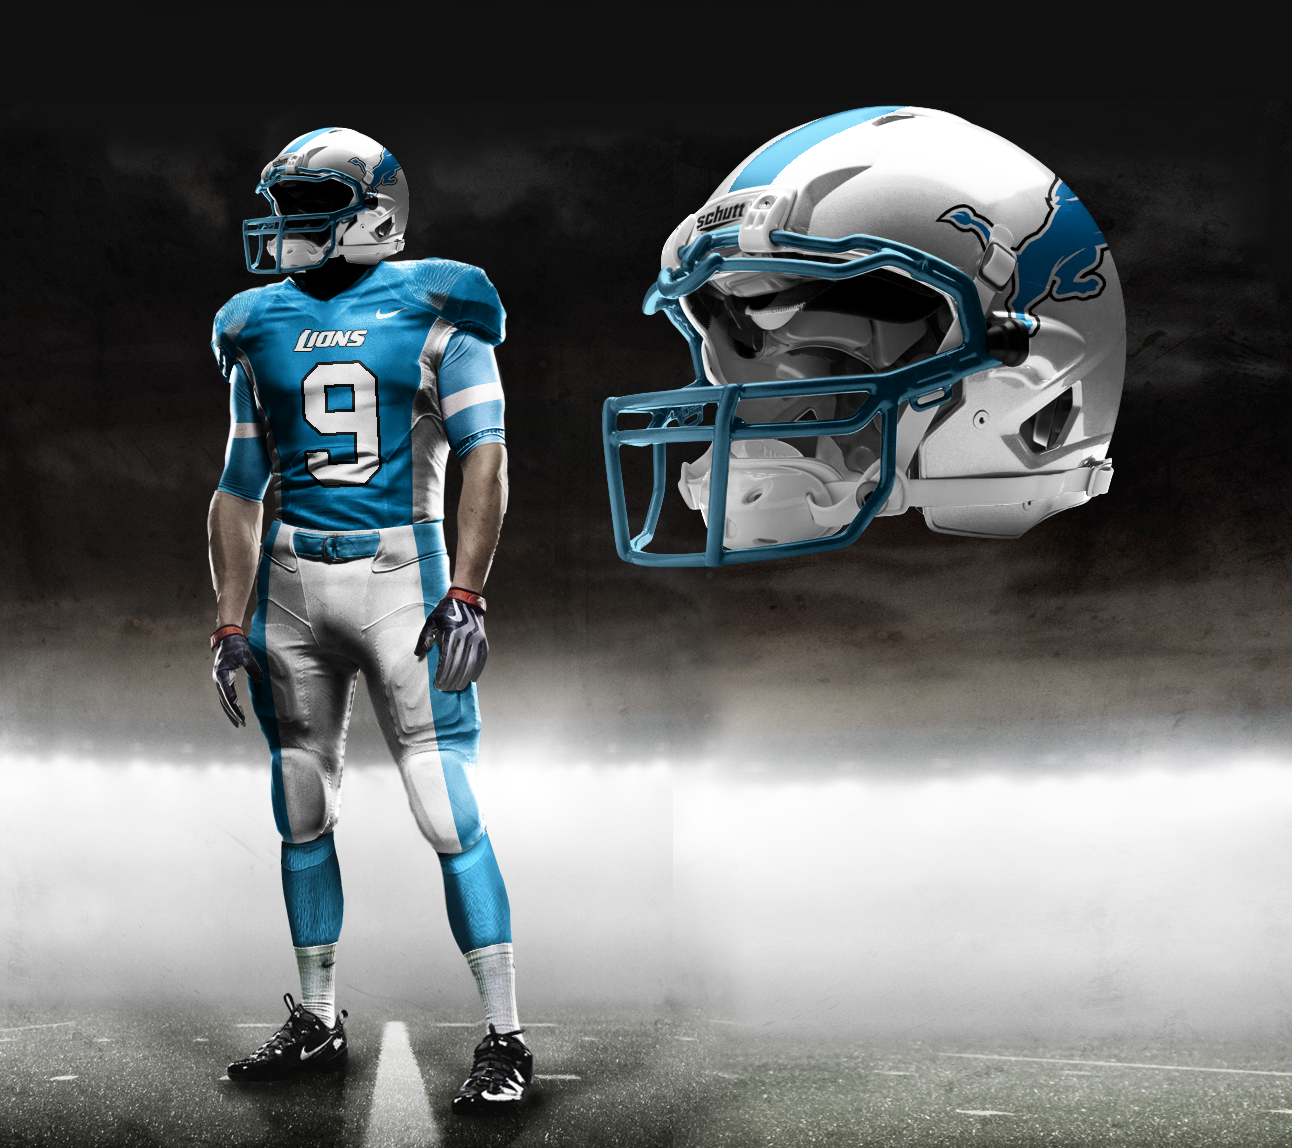 meet 4c136 3bbe9 Nike Pro Combat NFL Uniforms: Check Out Fake Unis That ...